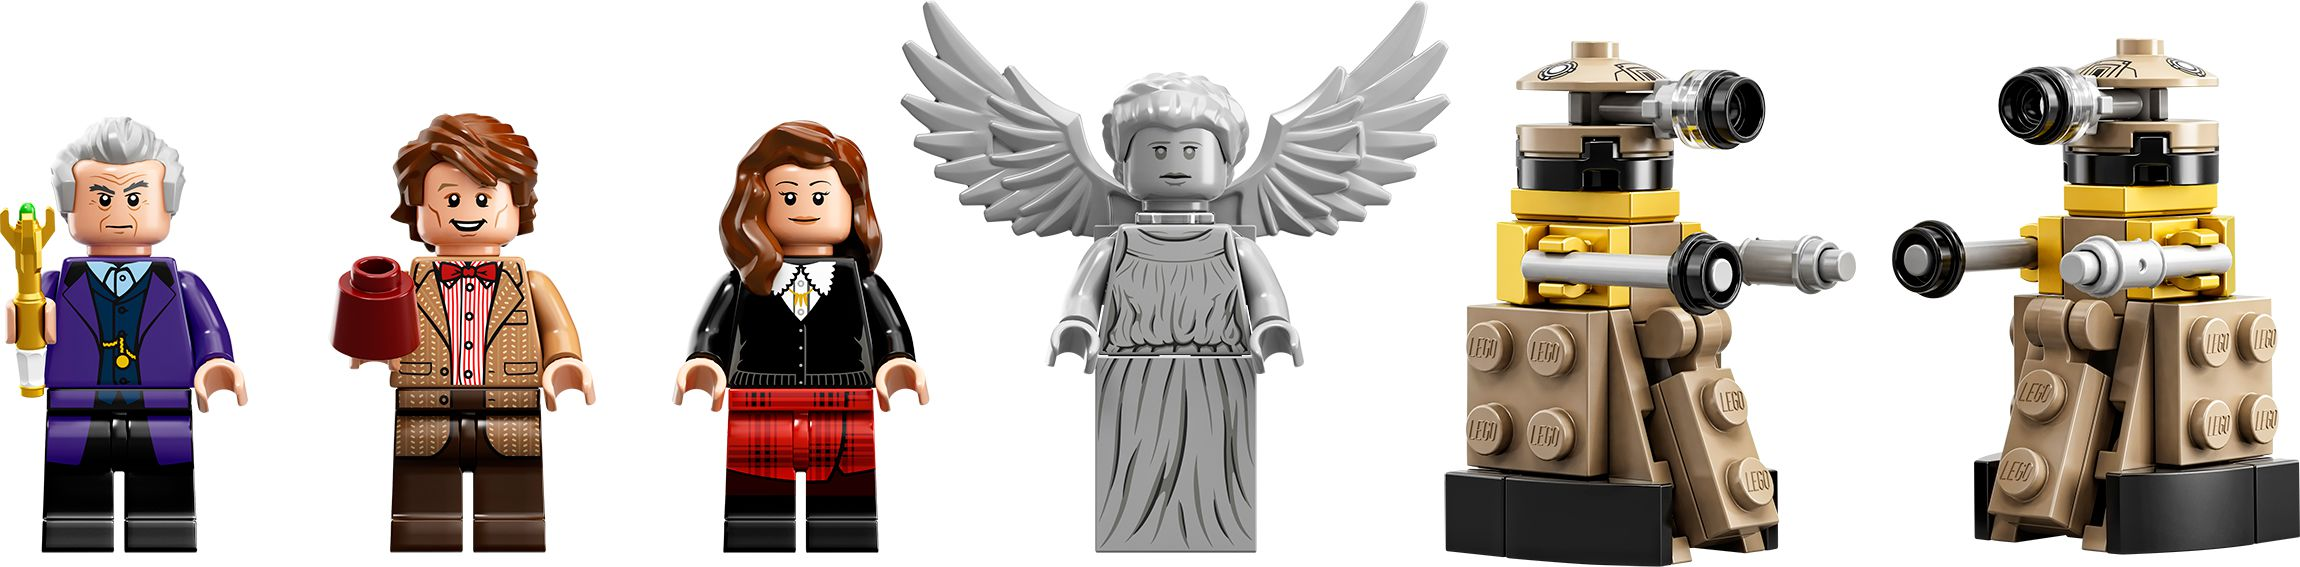 LEGO Ideas 21304 Doctor Who 21304-1_doctor_who_img09.jpg